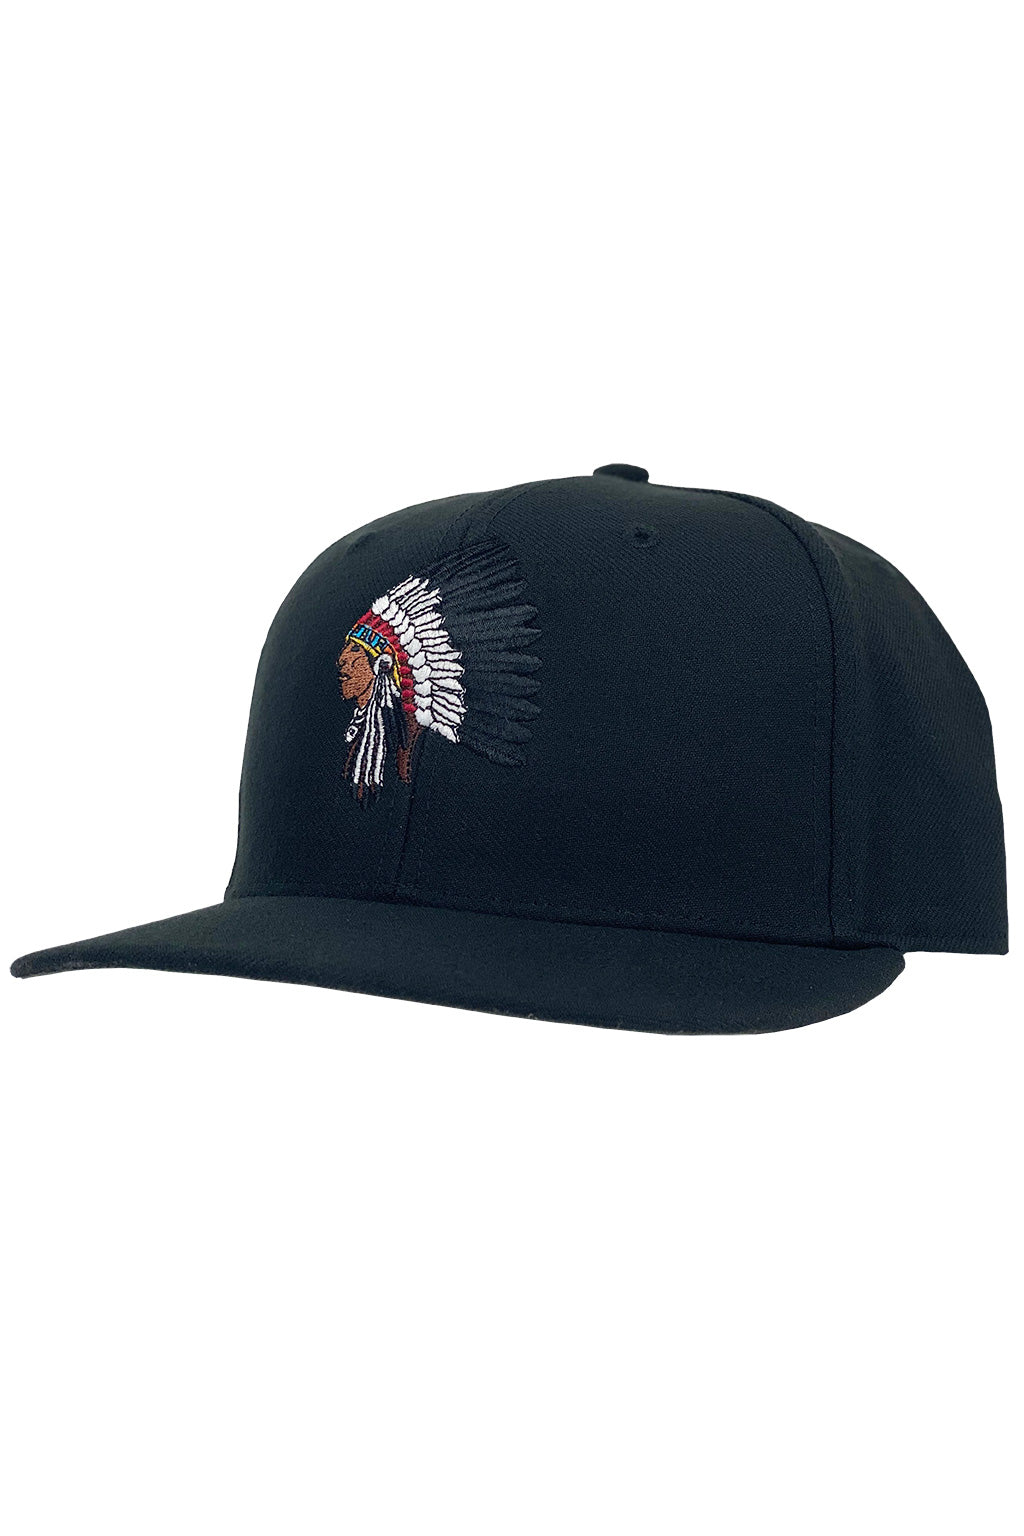 OG Chief Fitted Hat